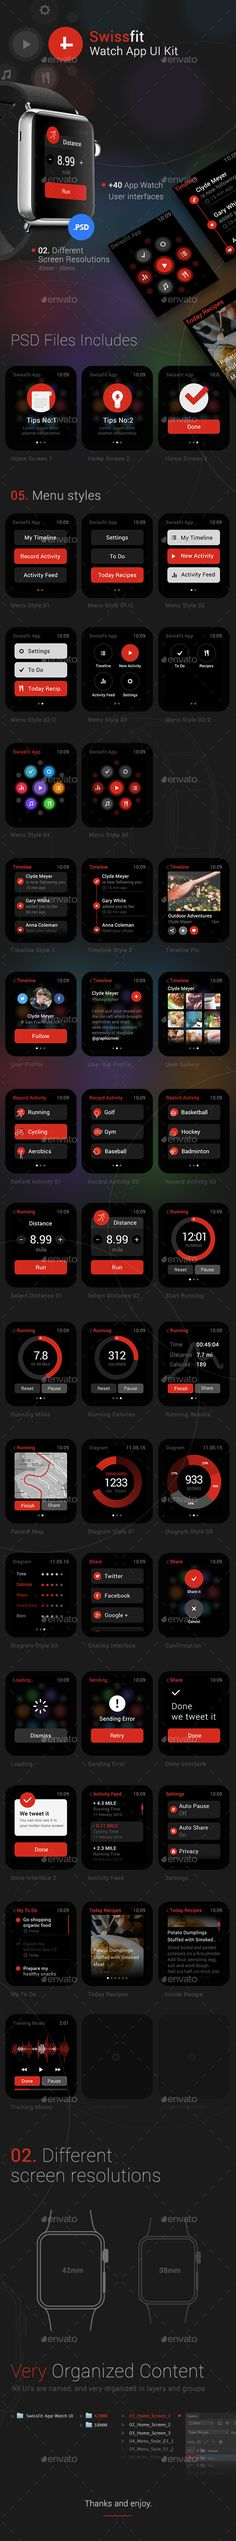 Swissfit Watch App User Interface Kit Template #design #ui Download: http://graphicriver.net/item/swissfit-watch-app-ui-kit/11382356?ref=ksioks